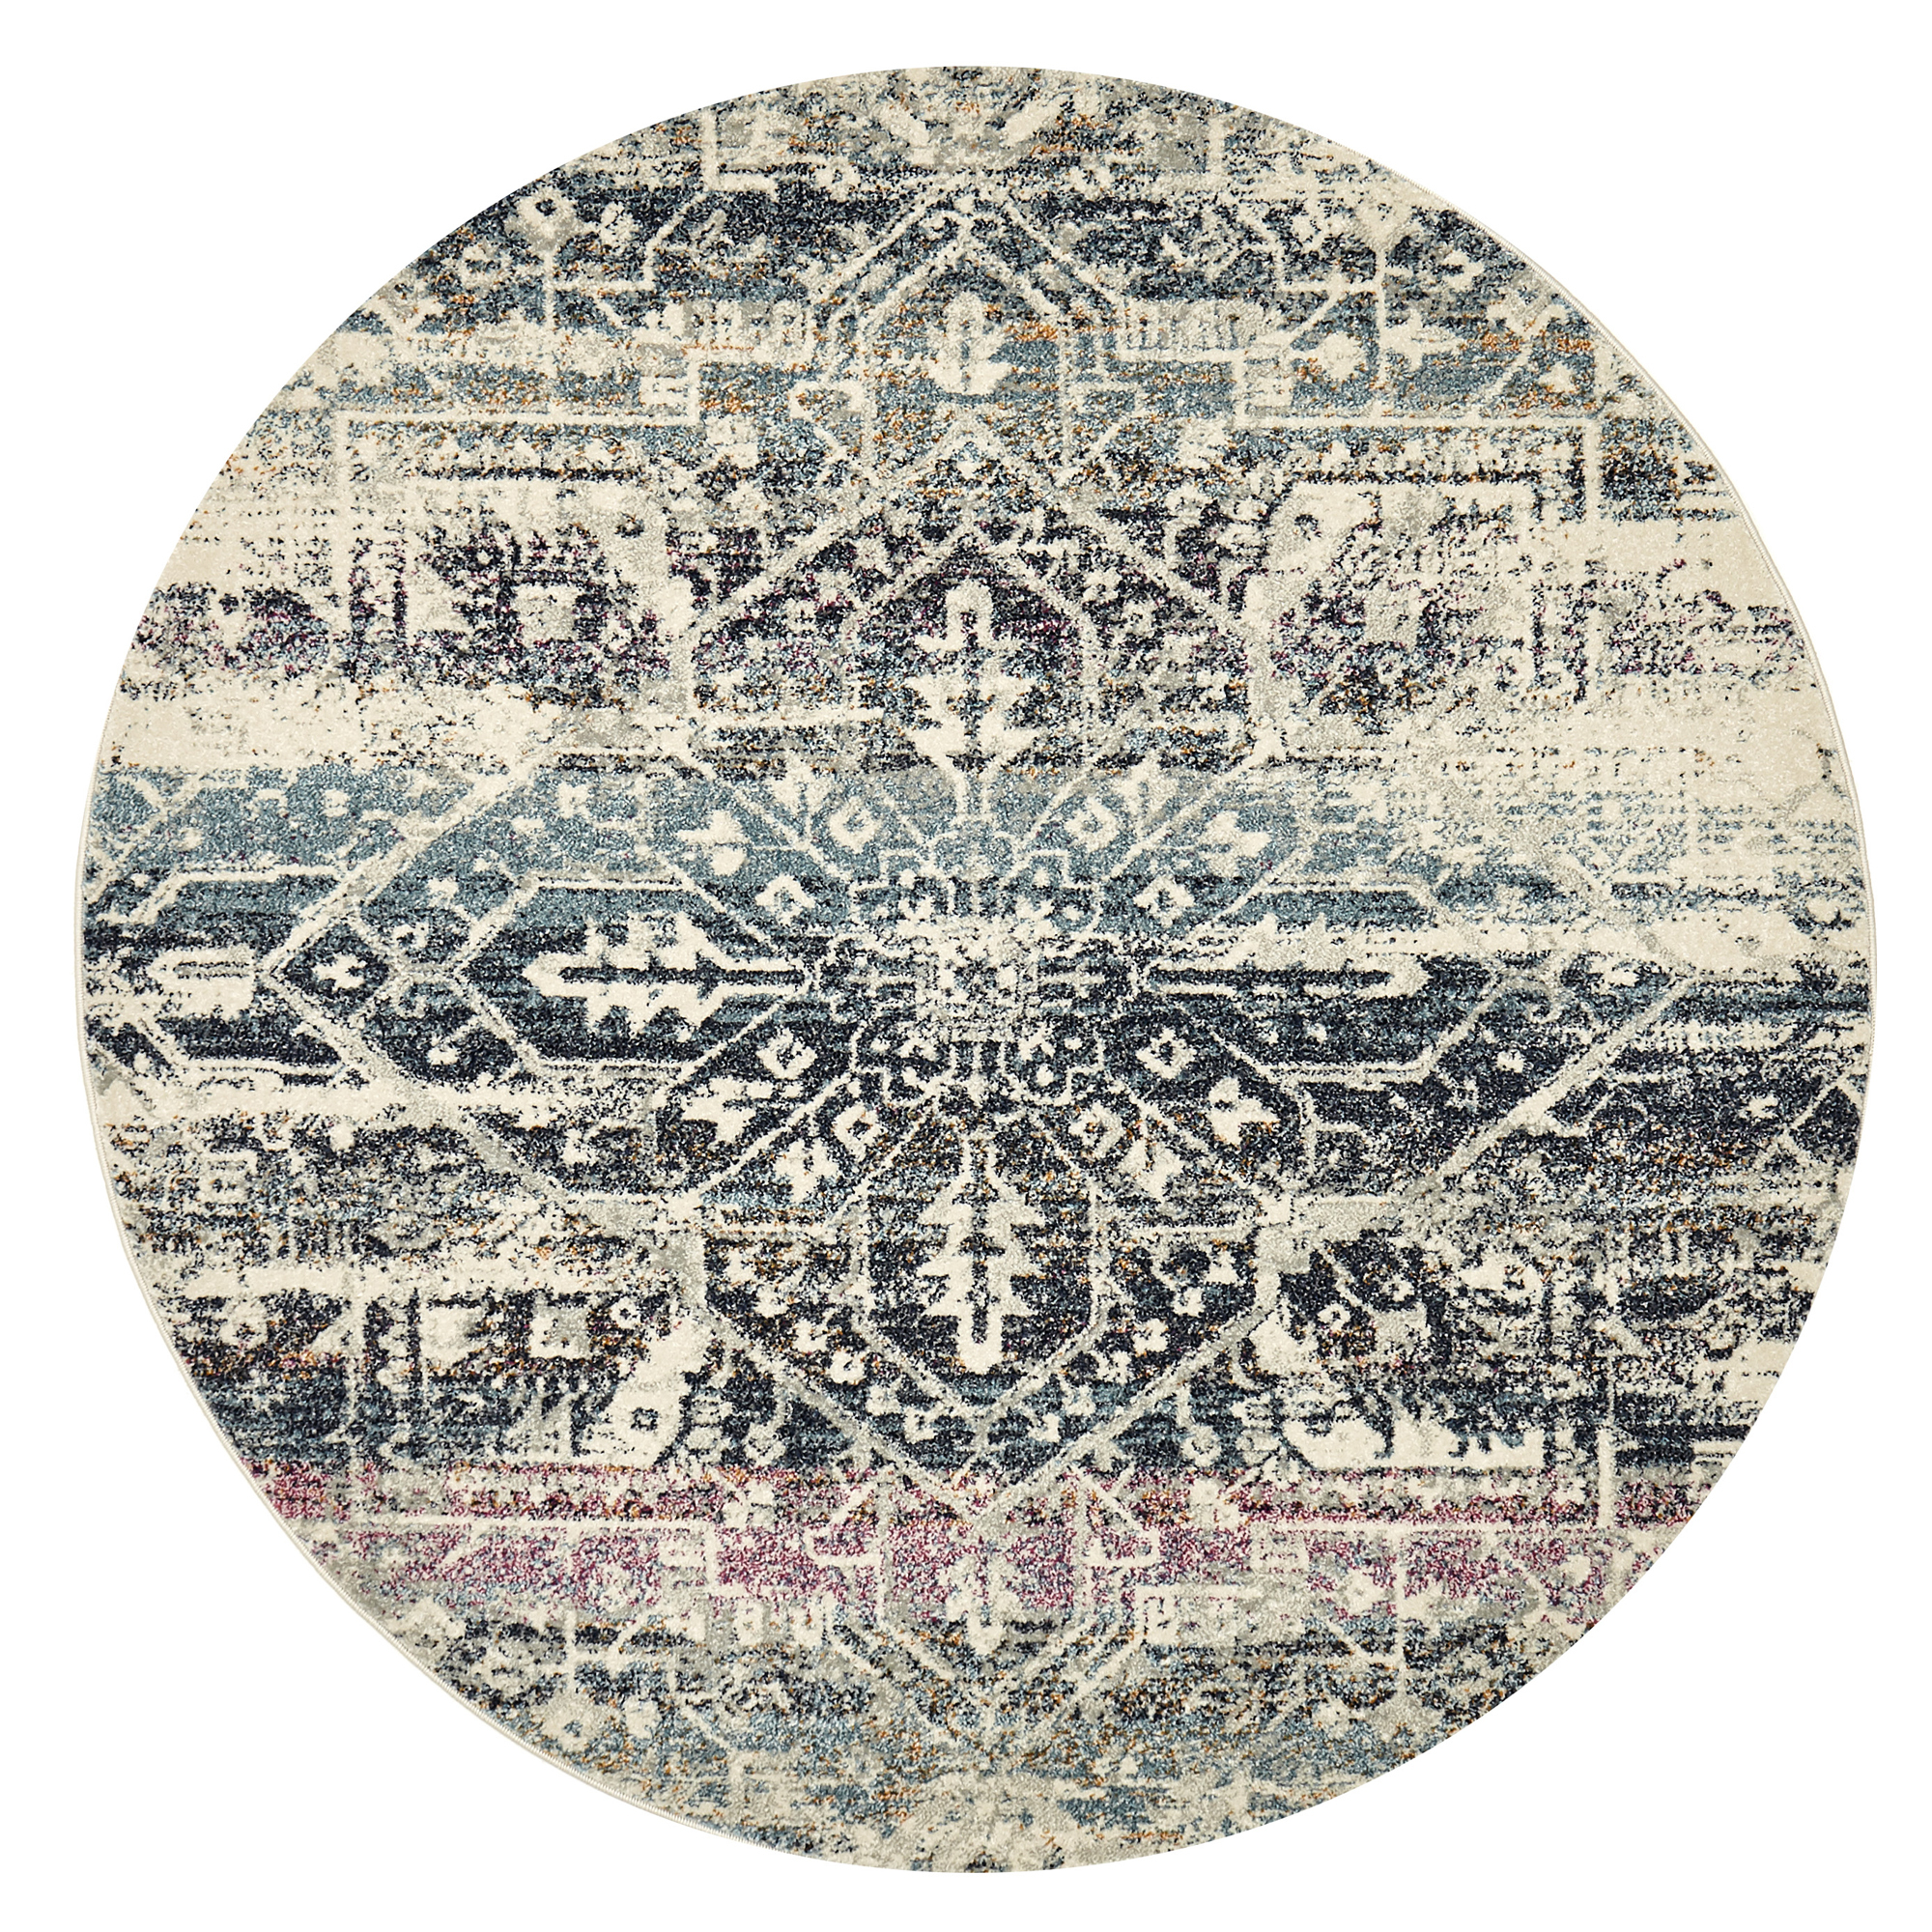 Sku #Netw7484 Blue Jaman Tolga Round Rug Is Also Sometimes